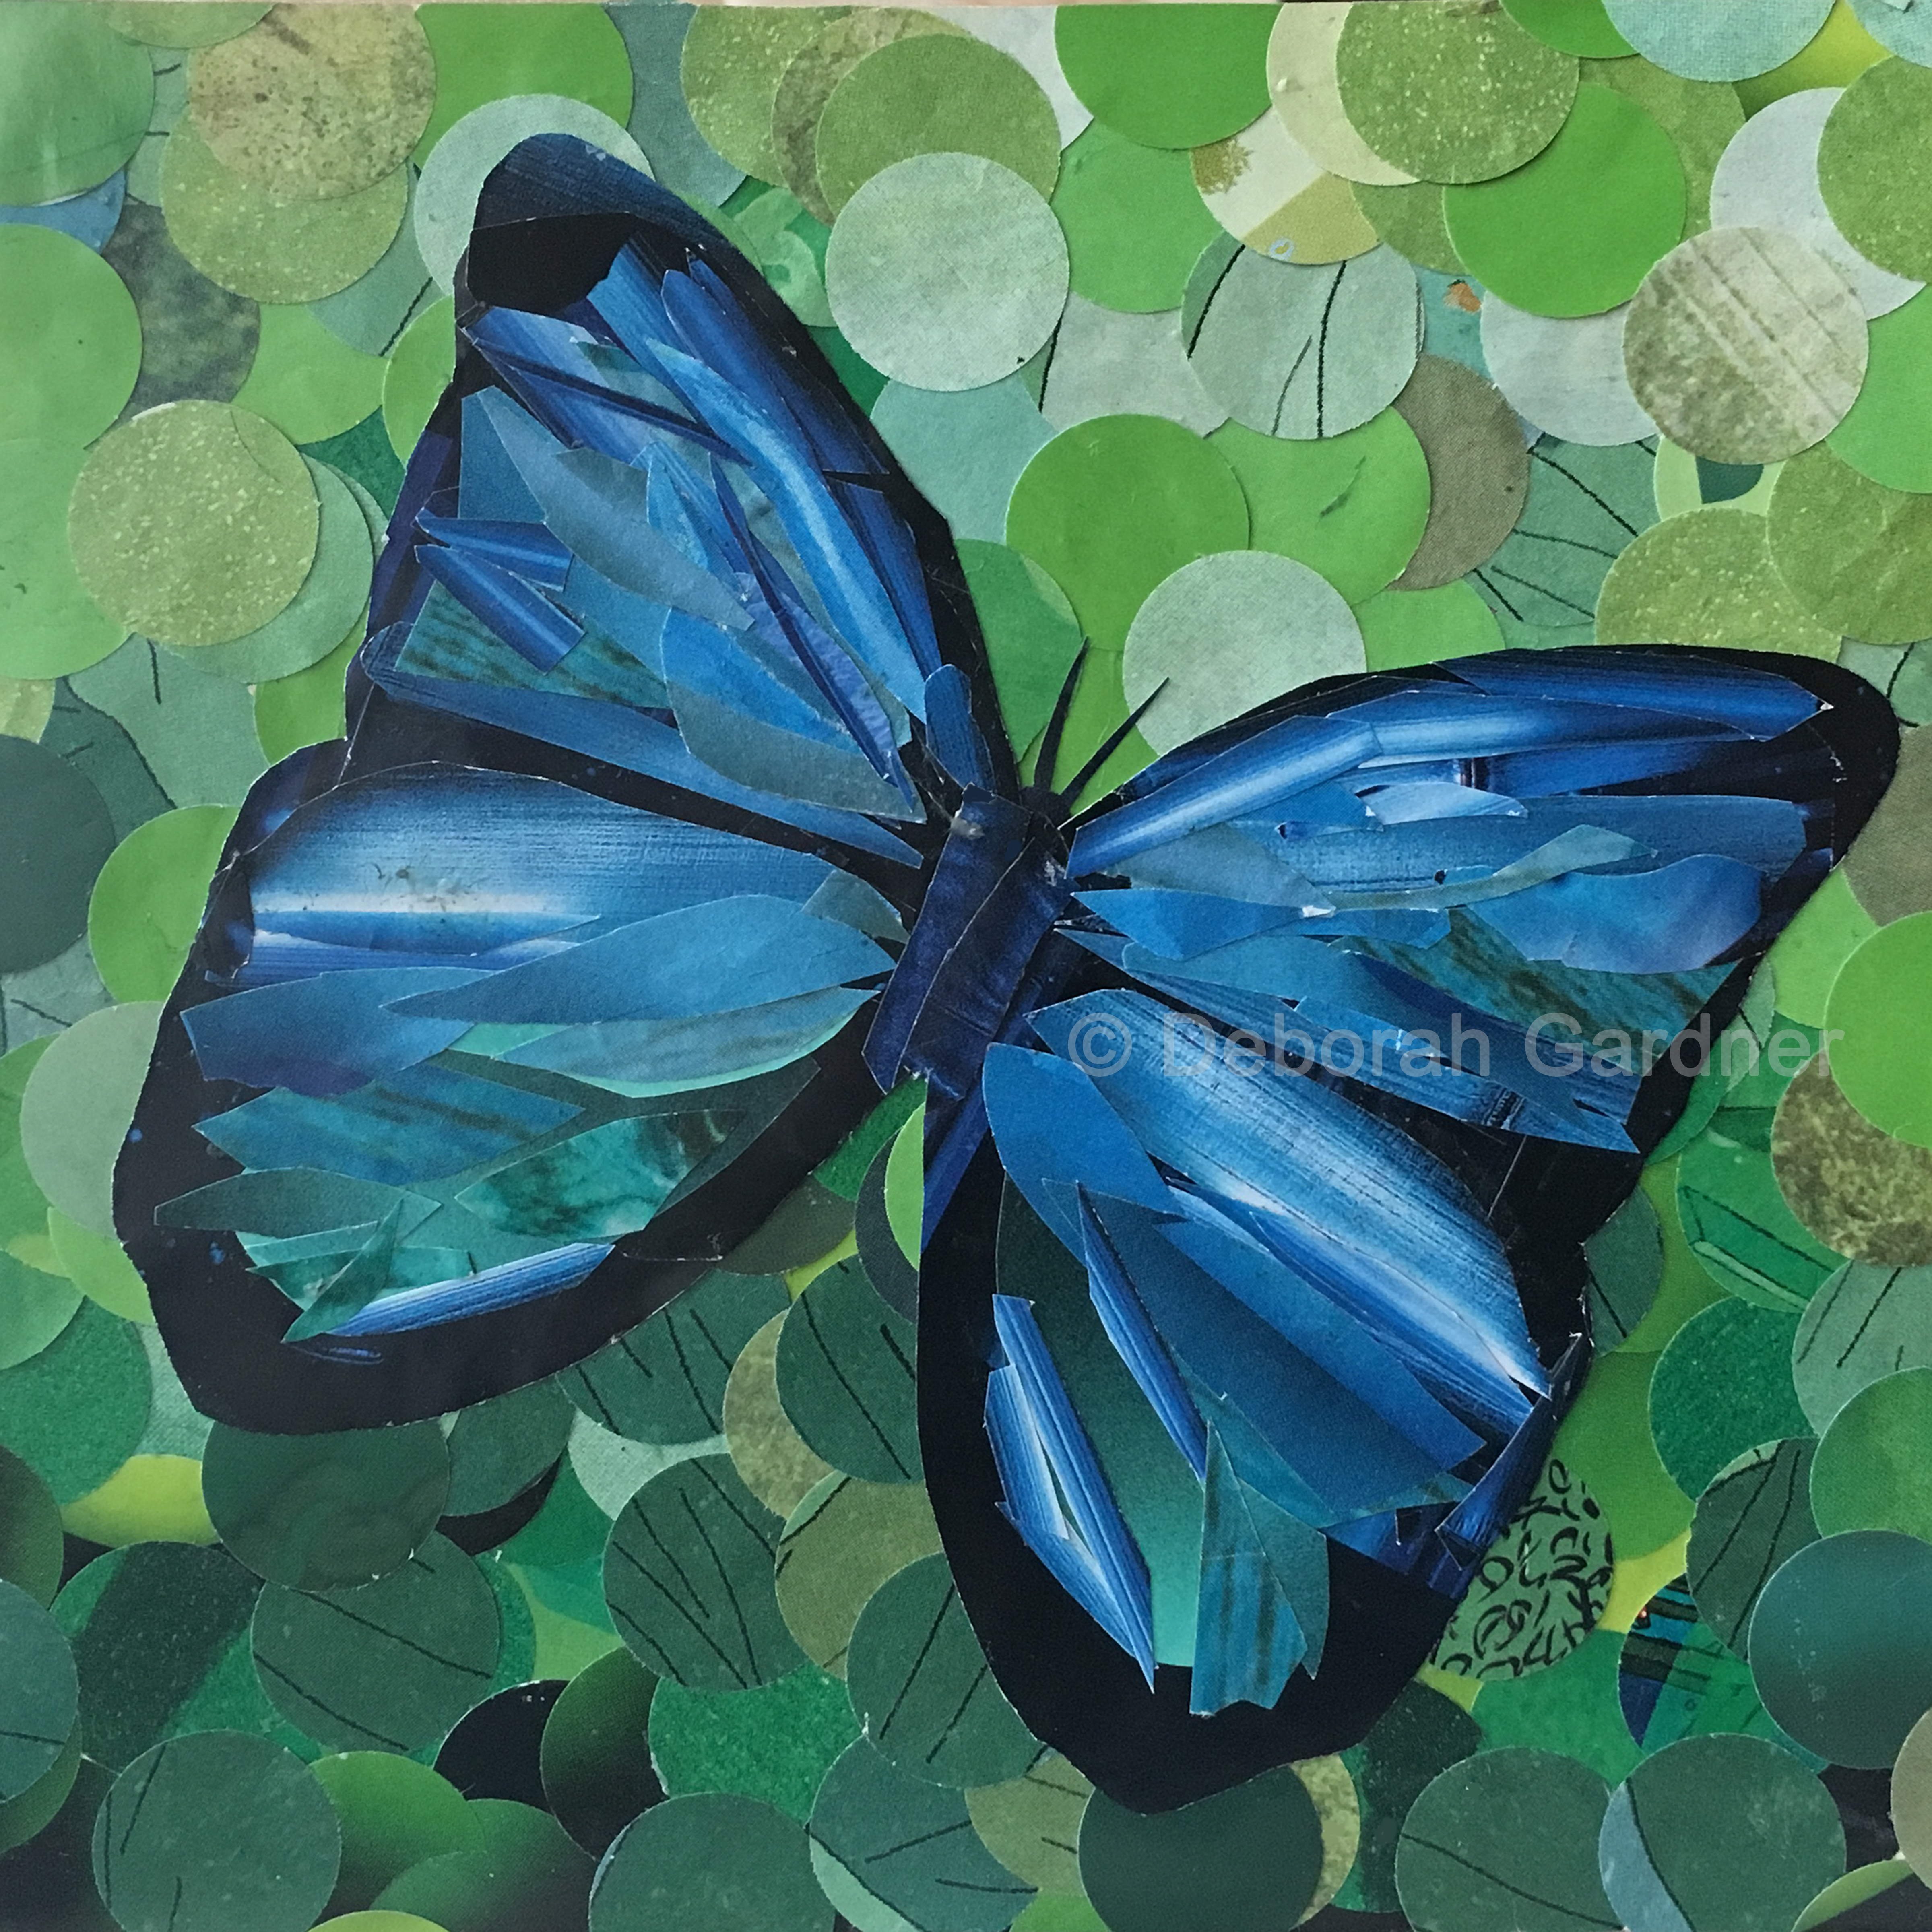 Square collage of a blue morpho butterfly on a green background